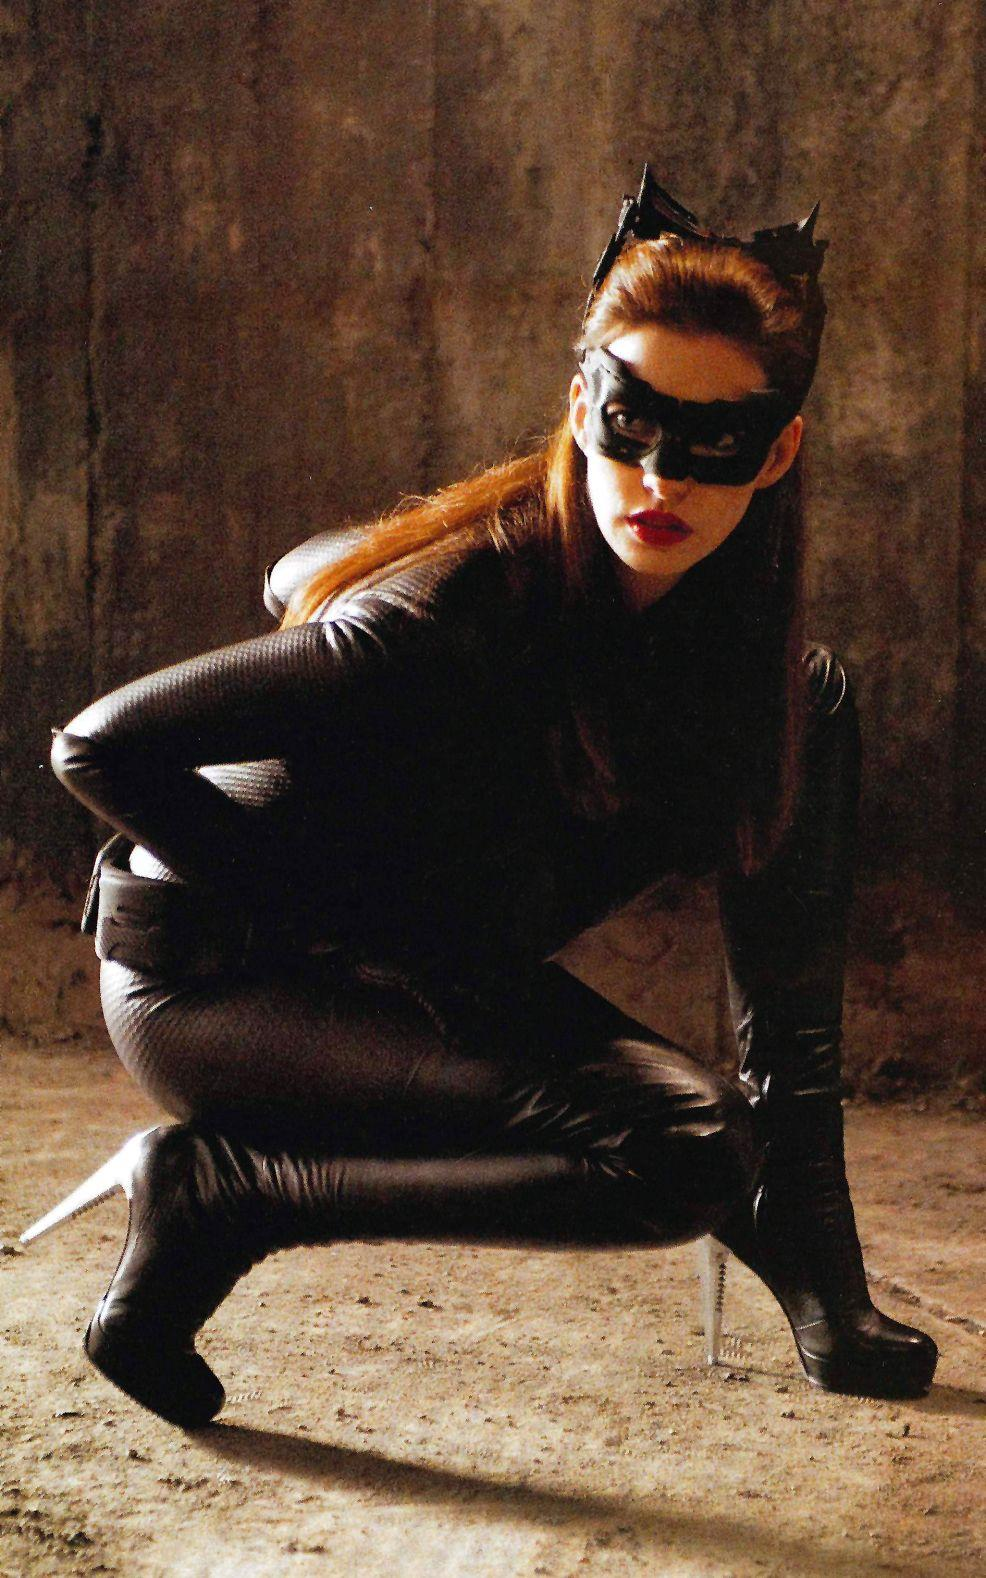 """Catwoman do Anne Hathaway đảm nhiệm trong """"The Dark Knight Rises"""" (2012)"""